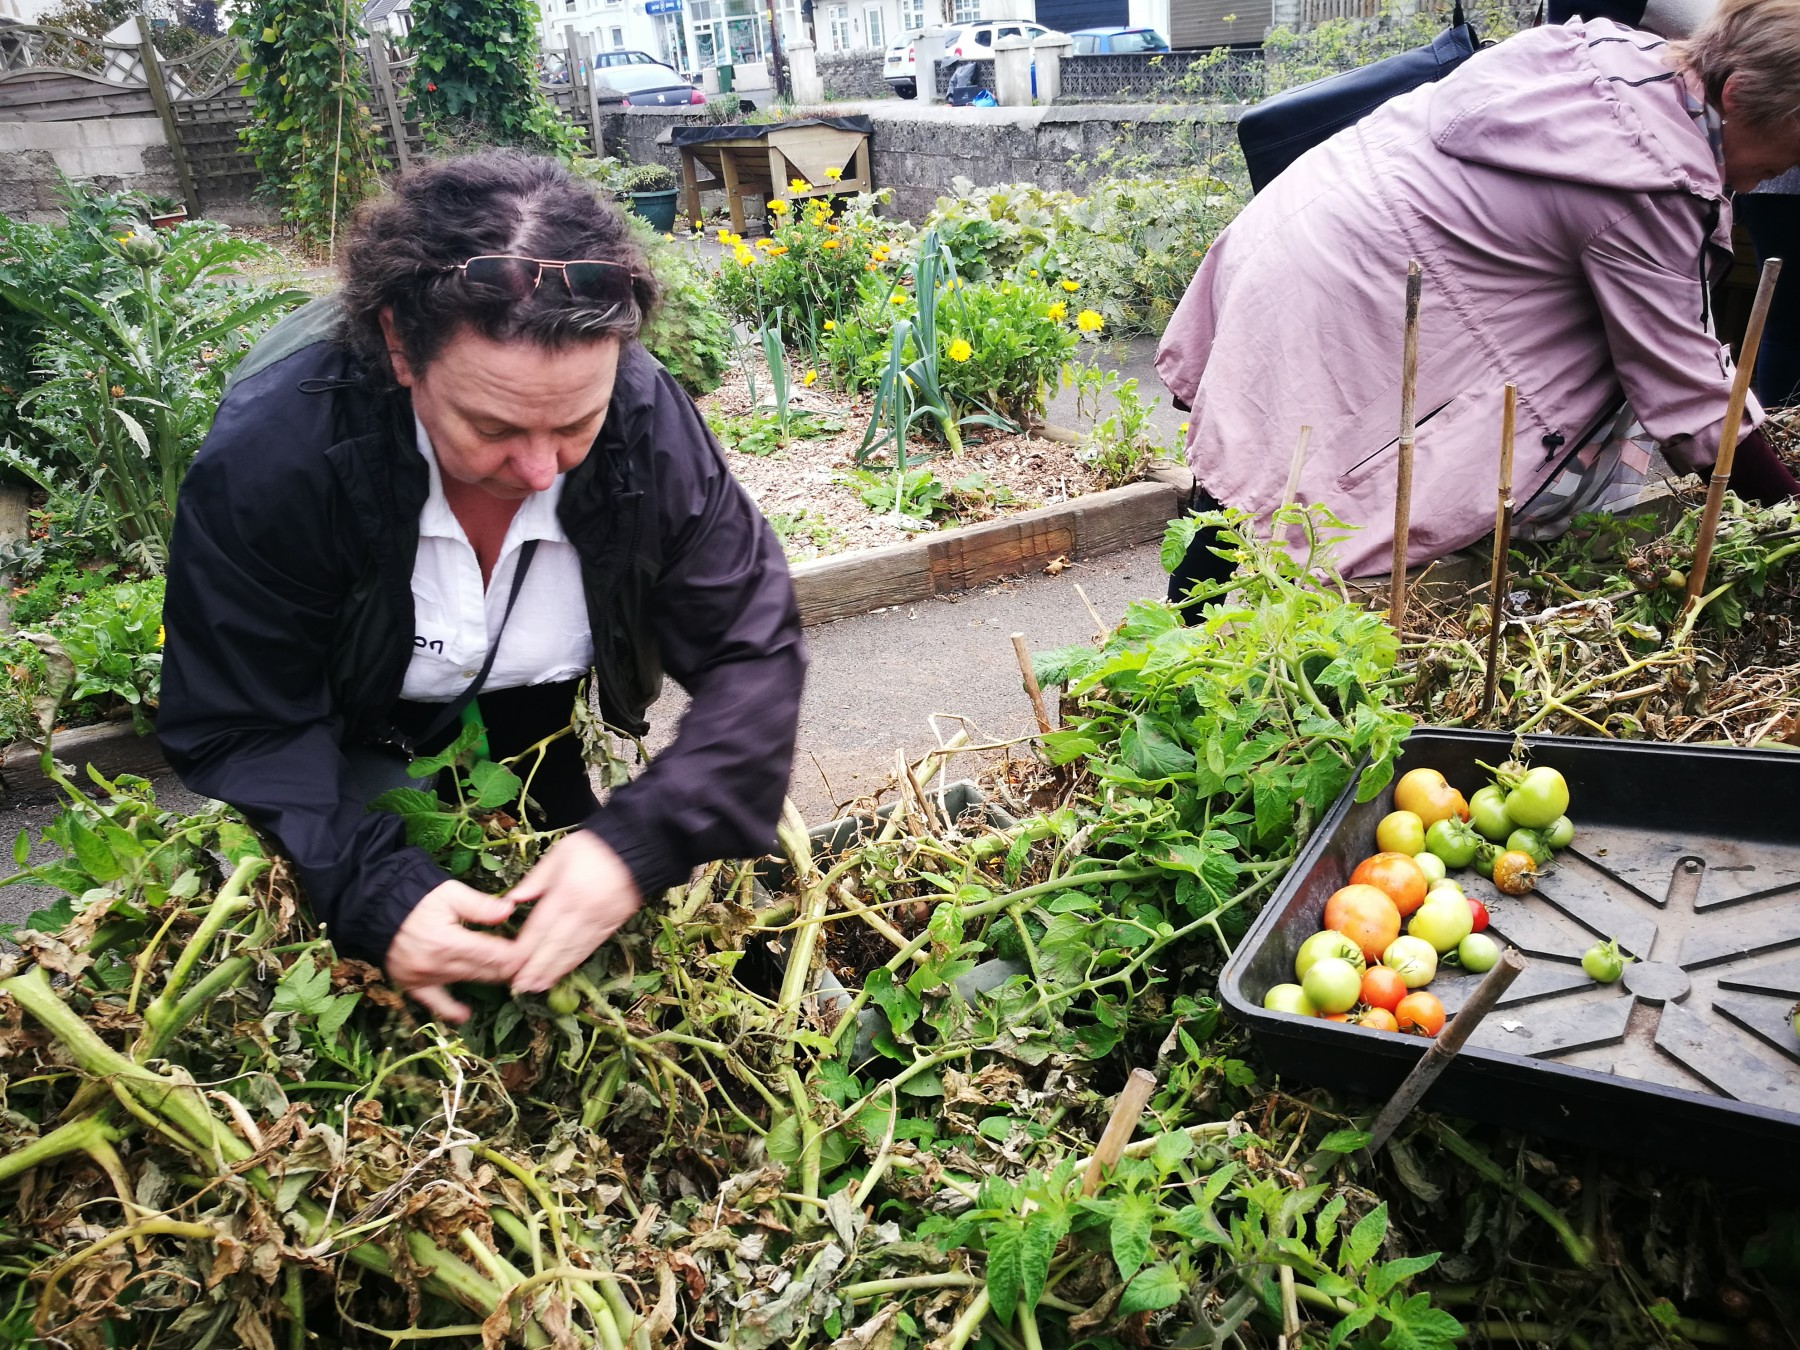 Woman picking tomatoes at a community garden